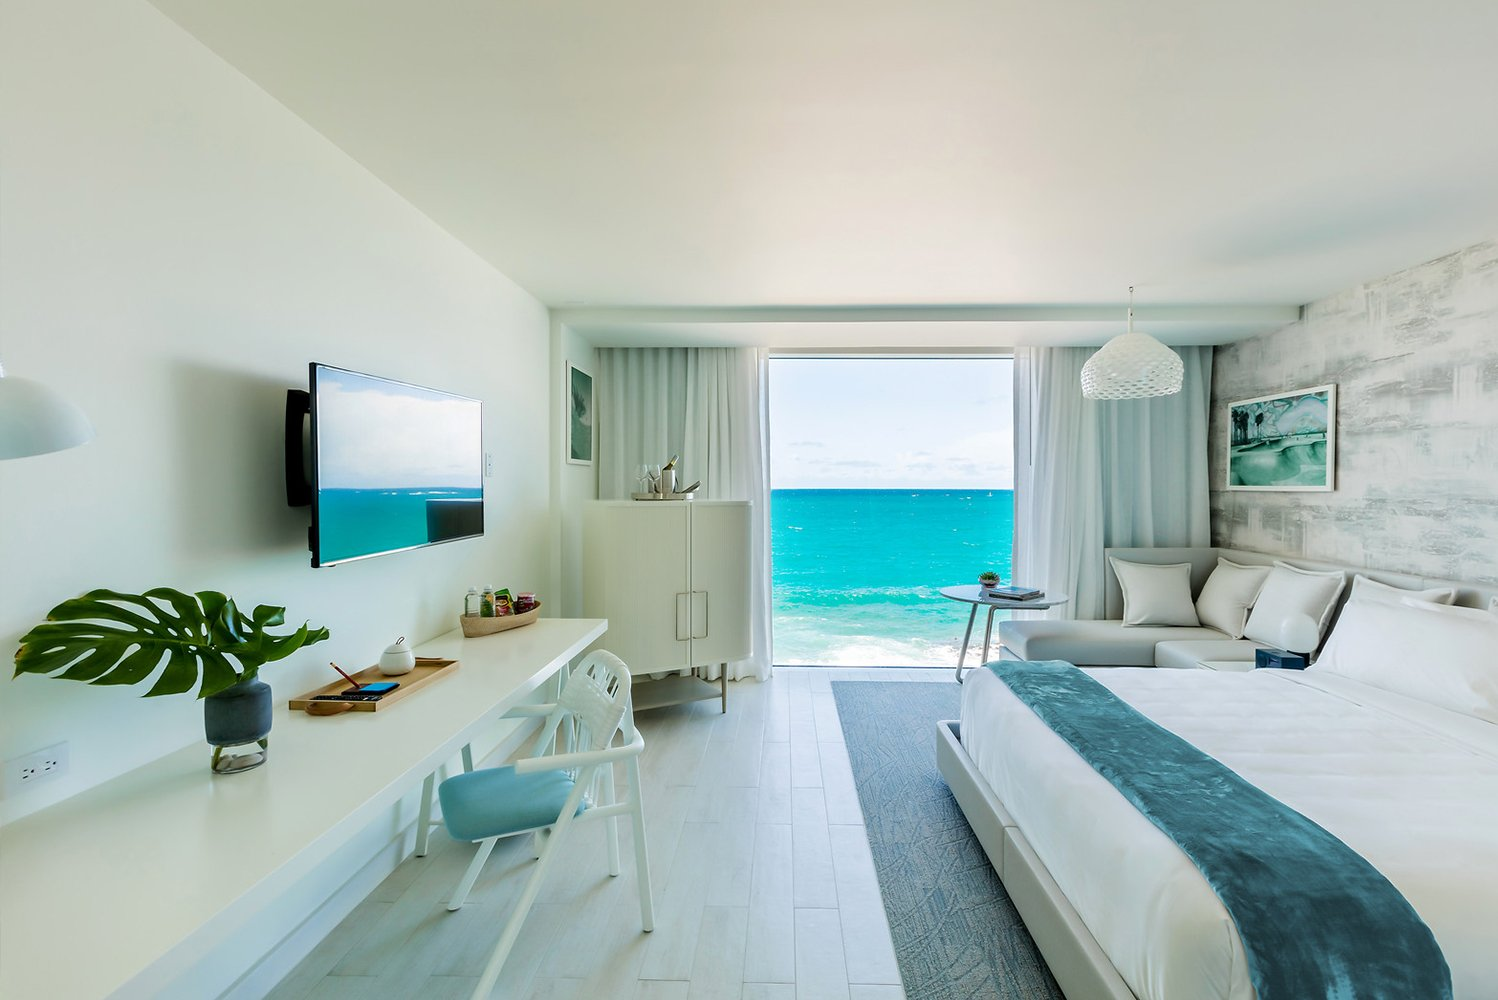 Upon opening, the property will have 96 rooms that will have floor-to-ceiling windows to offer views of the Atlantic Ocean or the neighboring Laguna del Condado.